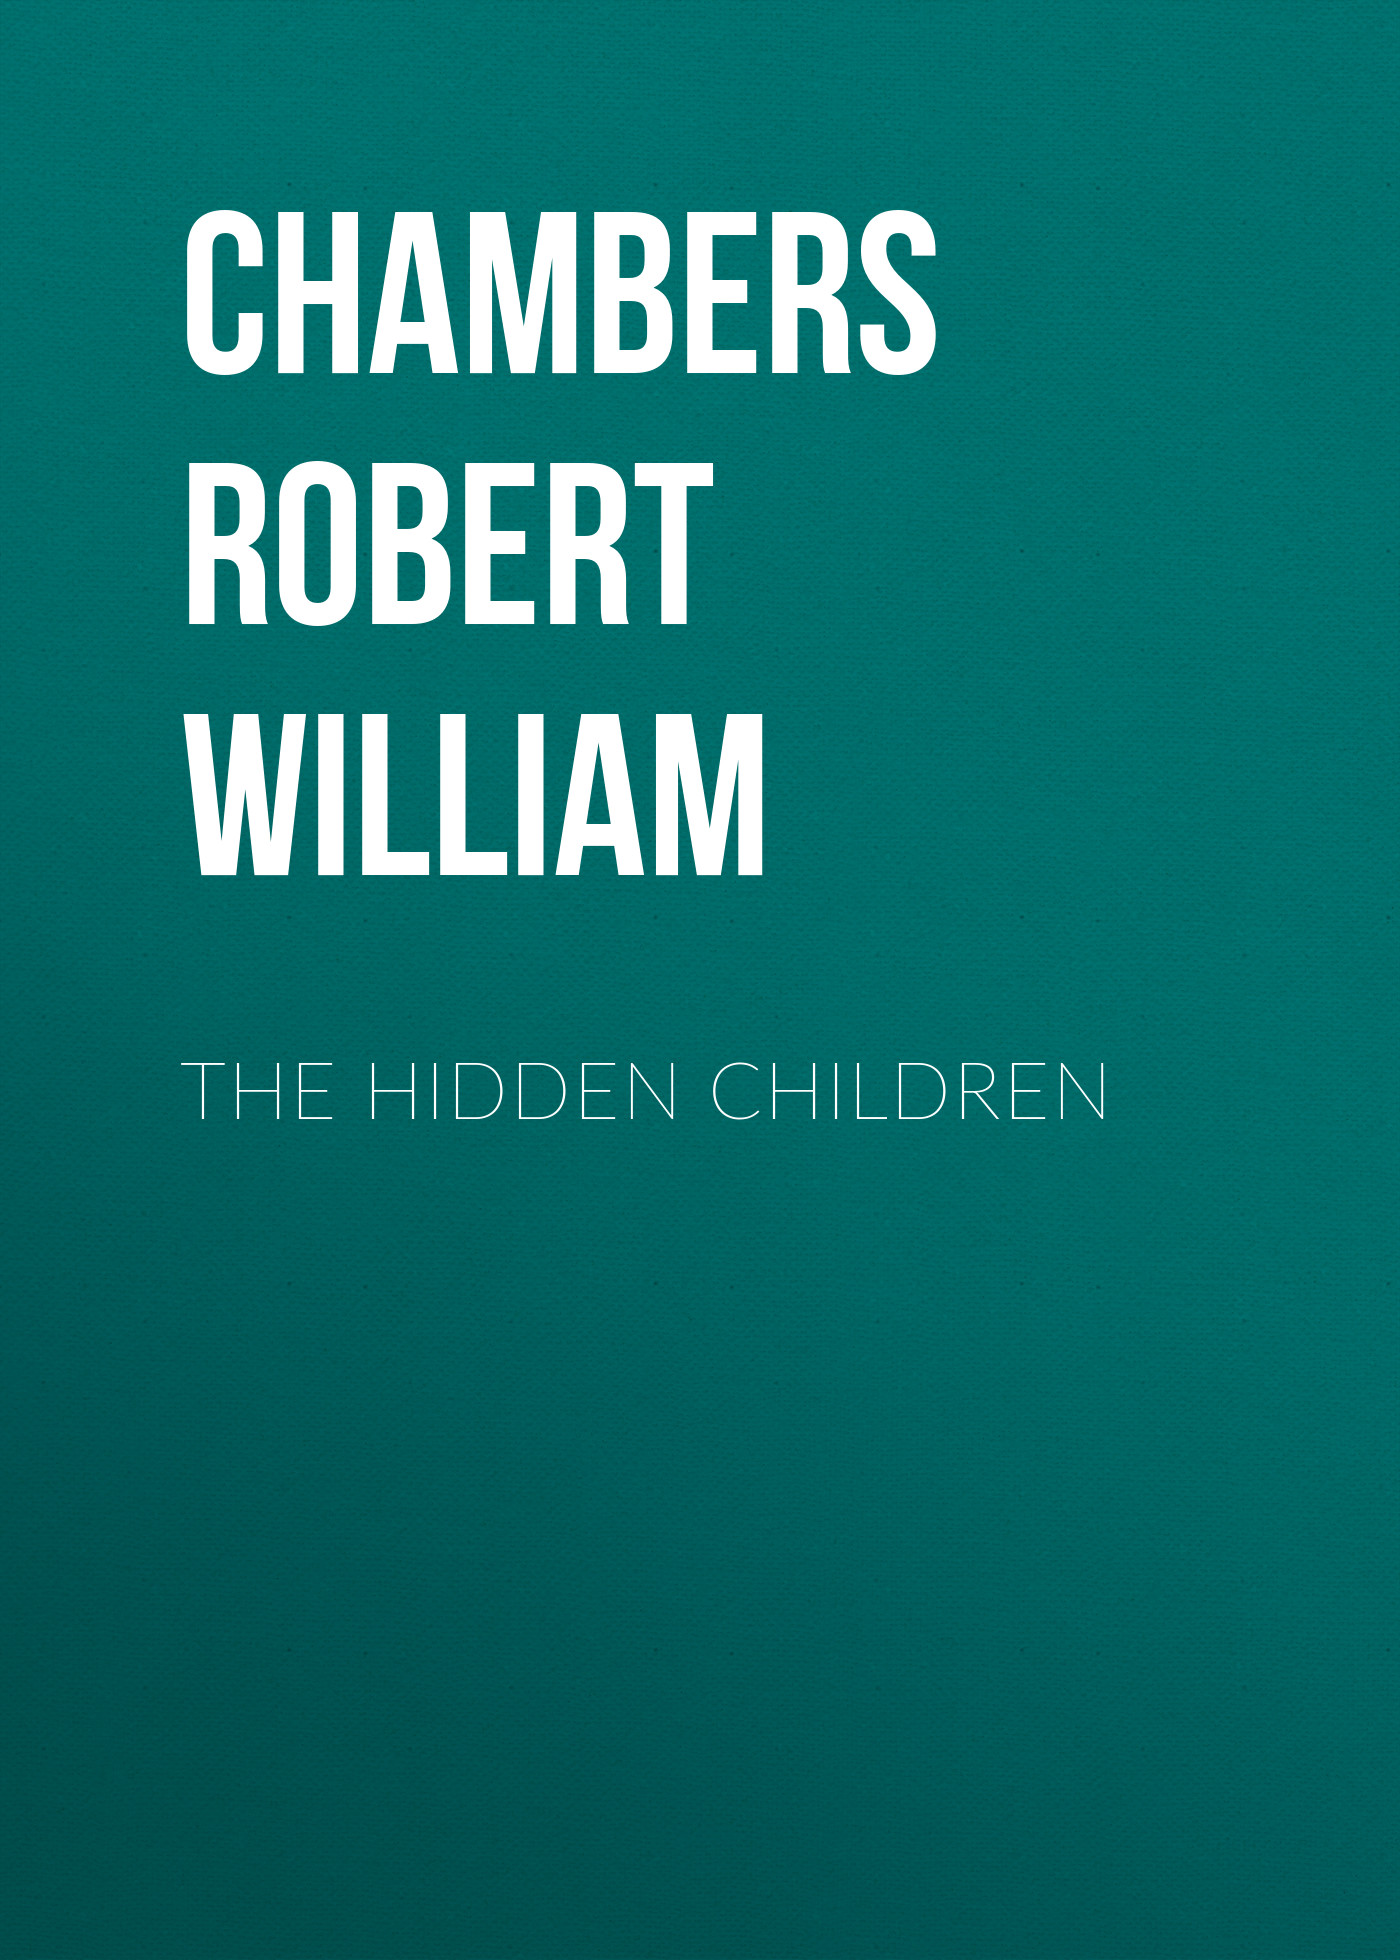 Chambers Robert William The Hidden Children недорого